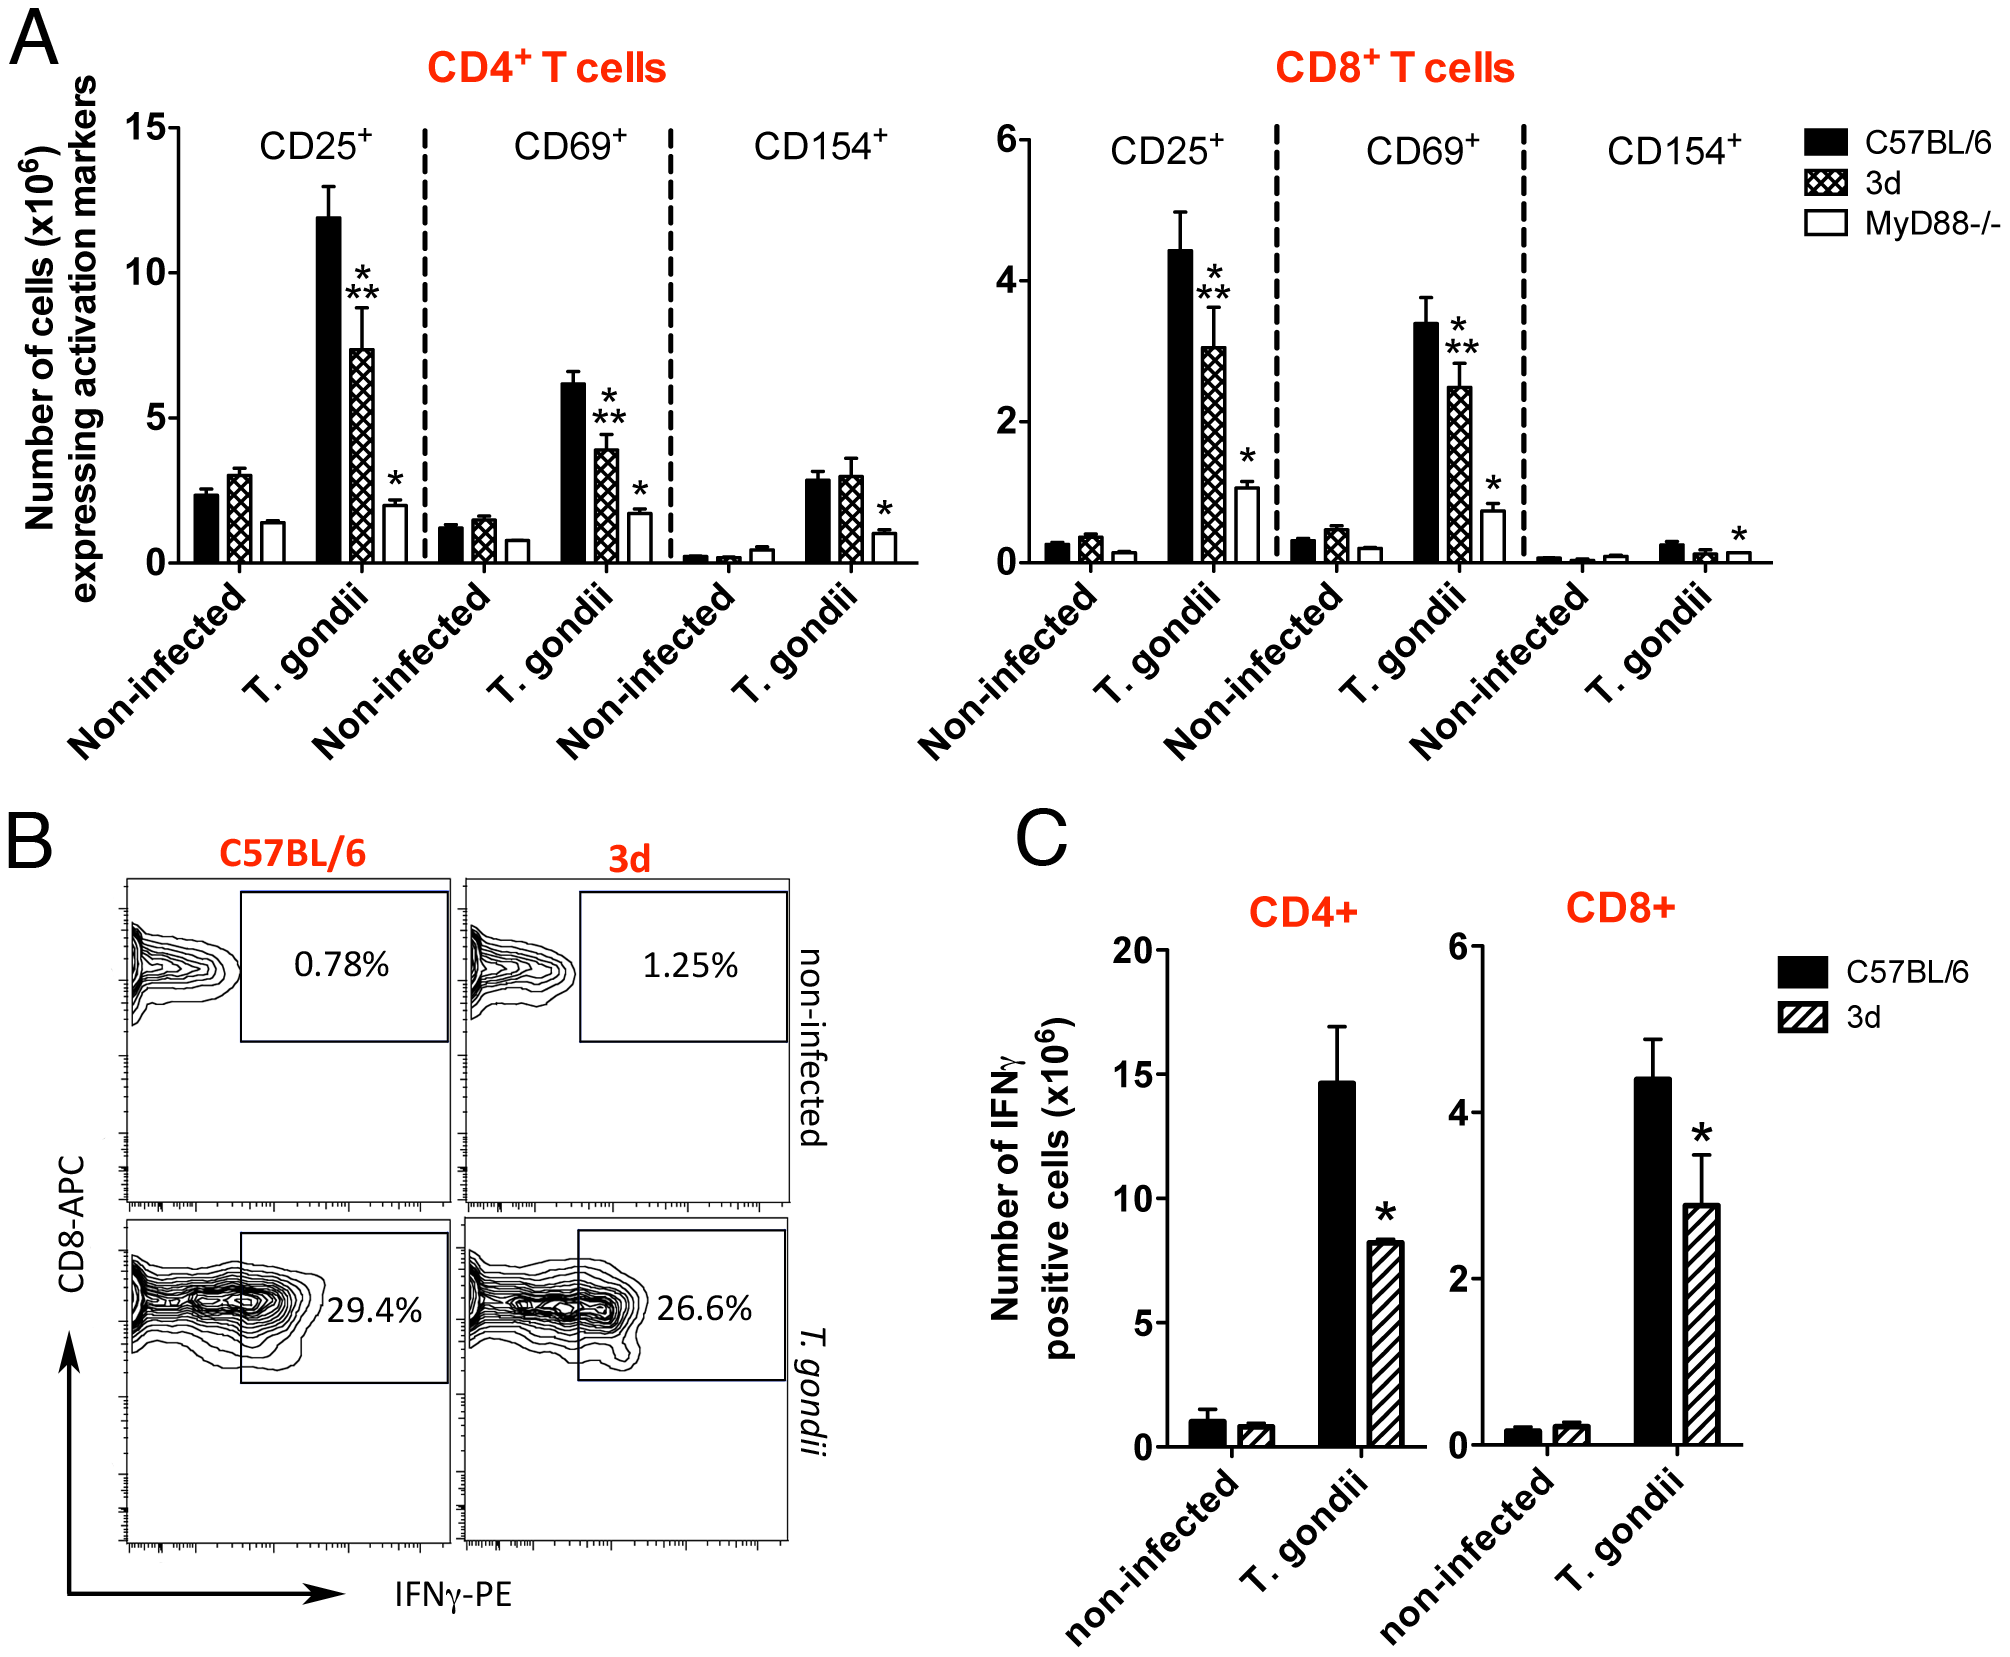 Upon infection with <i>T. gondii</i>, 3d mice display a significant number of T cells expressing activation markers in the surface.